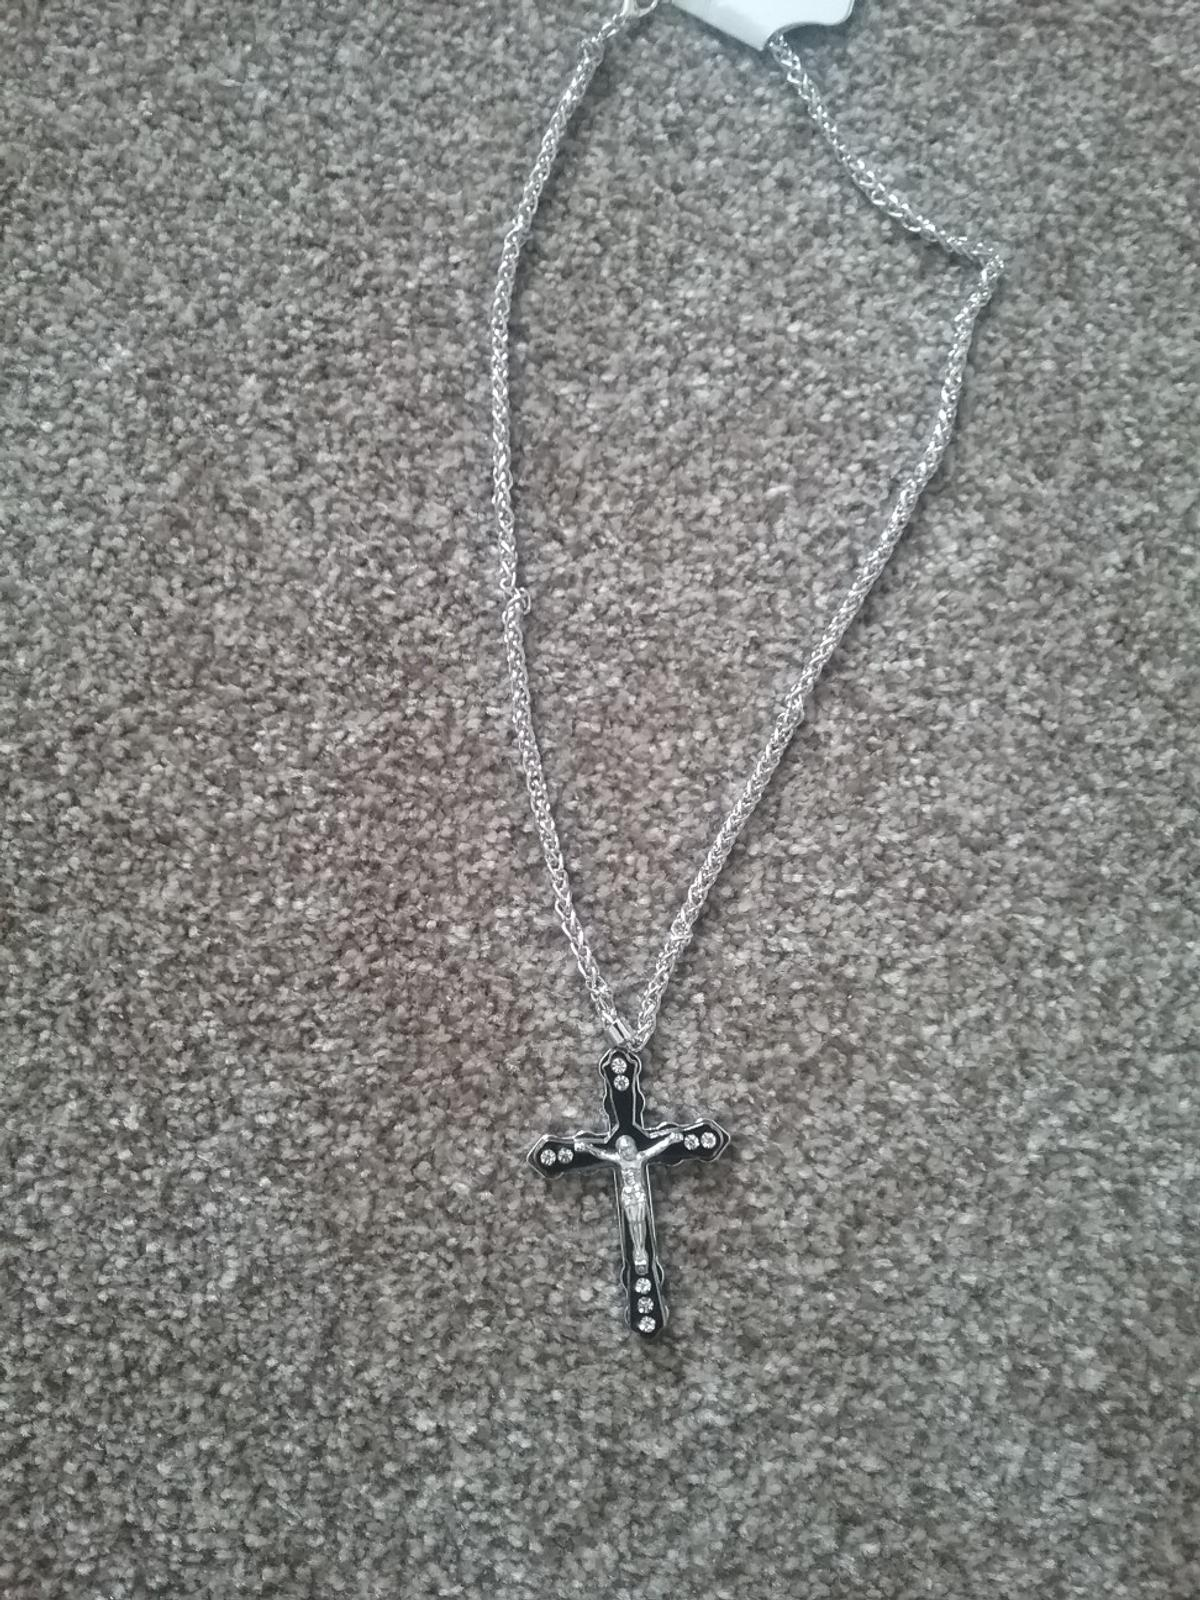 brand New silver cross chain selling at cost wholesale price due to closure of shop due to virus open to minor offers